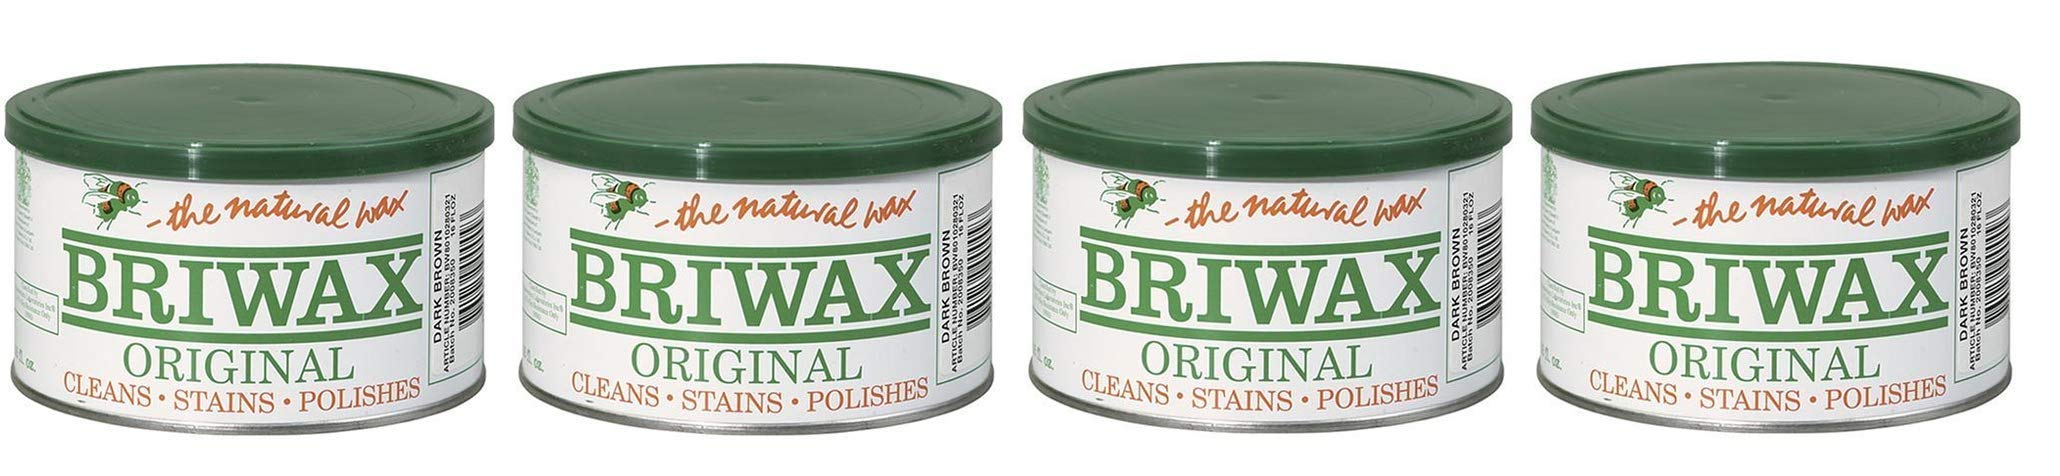 Briwax Darkbrown (Dark Brown) Furniture Wax, Cleans, Stains, and Polishes (Fоur Paсk)